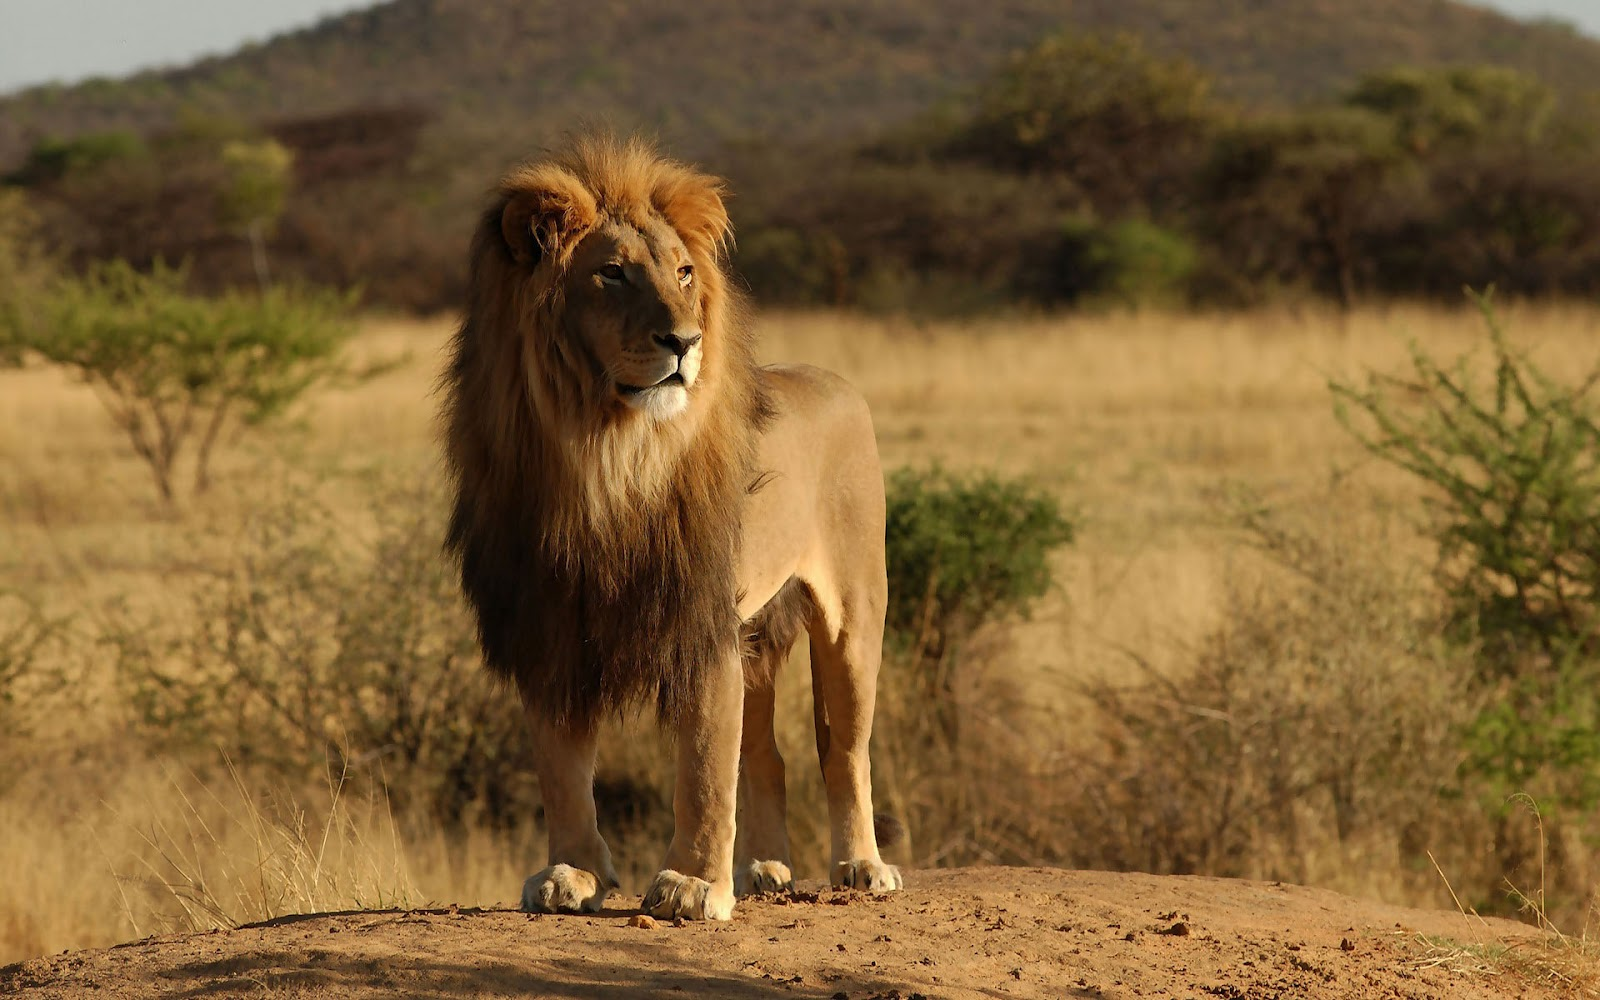 hd lion wallpaper with a big lion in the field lions wallpapers 1600x1000